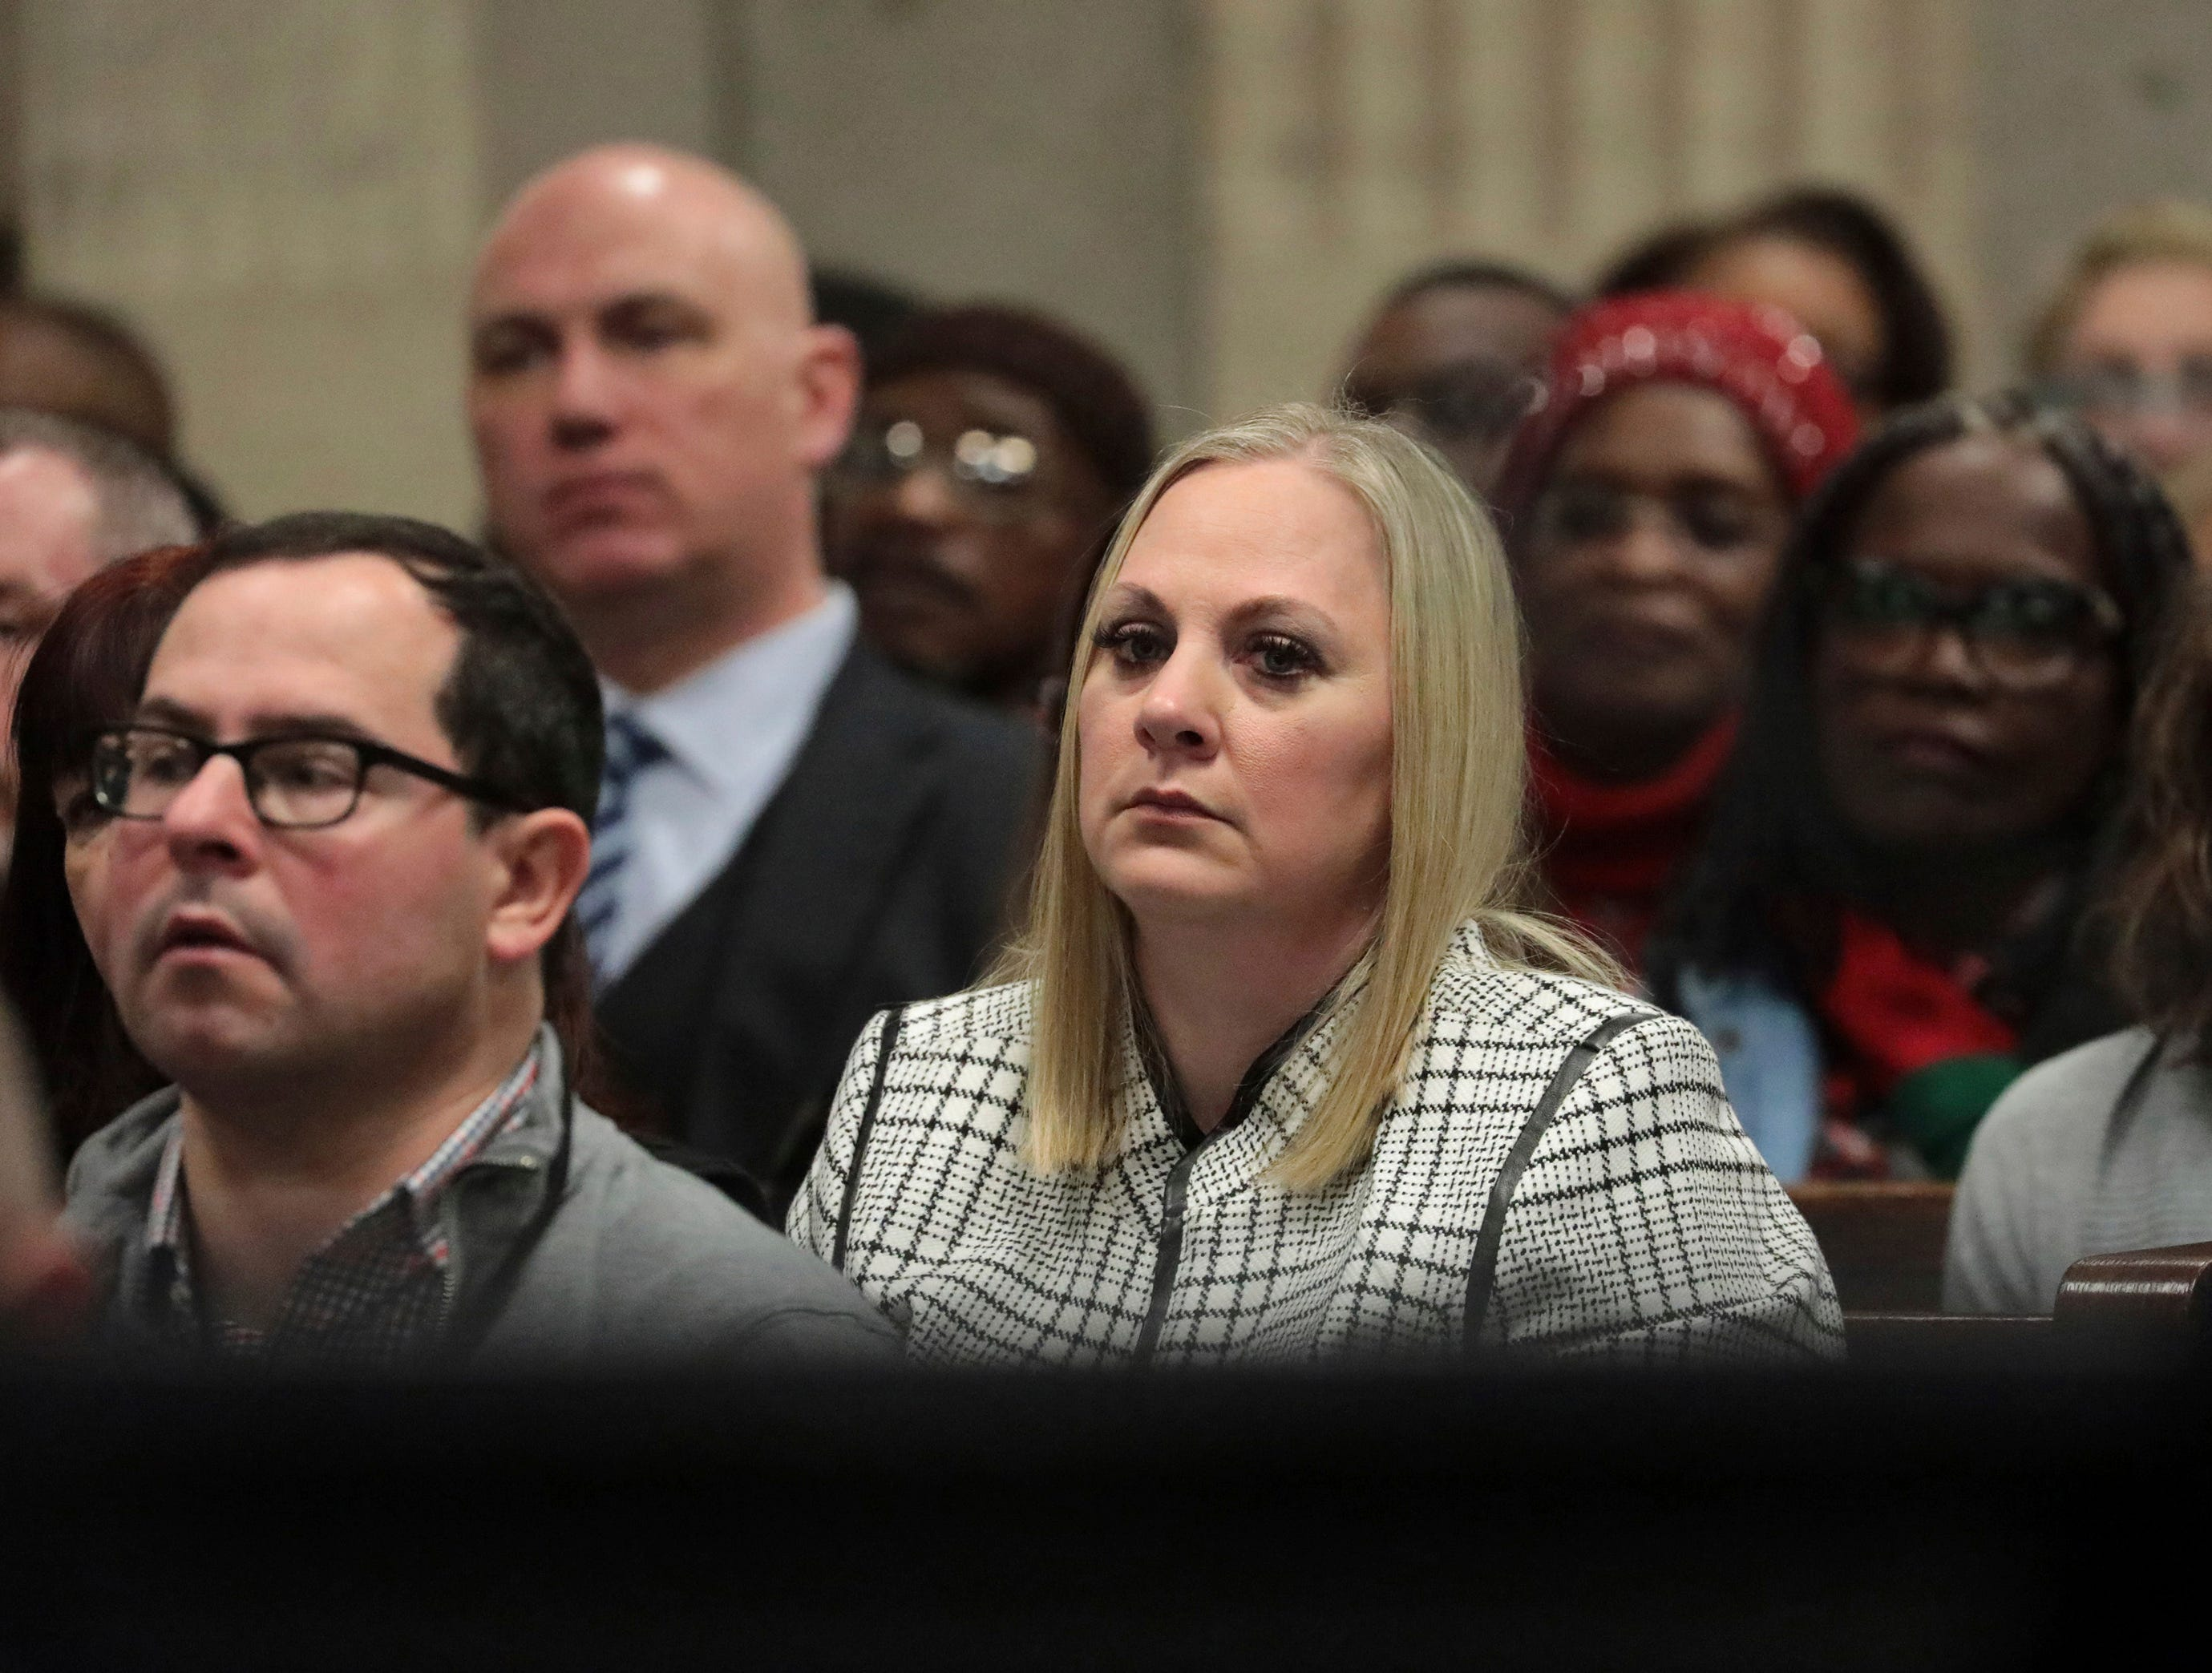 Tiffany Van Dyke wife of former Chicago police Officer Jason Van Dyke attends his sentencing hearing at the Leighton Criminal Court Building, Friday, Jan. 18, 2019, in Chicago, for the 2014 shooting of Laquan McDonald.